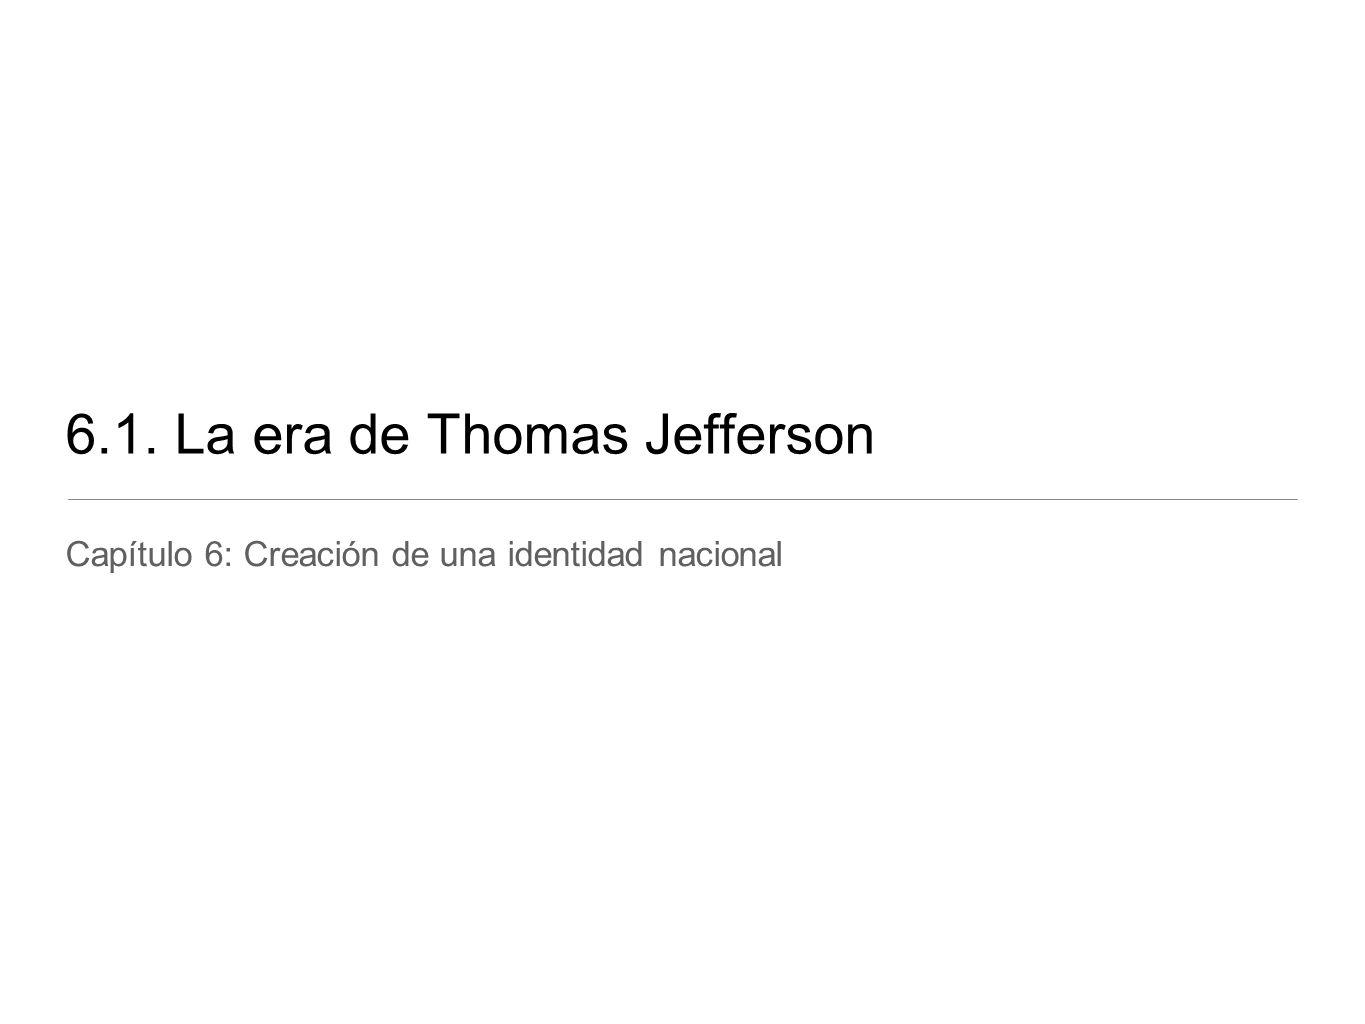 6.1. La era de Thomas Jefferson